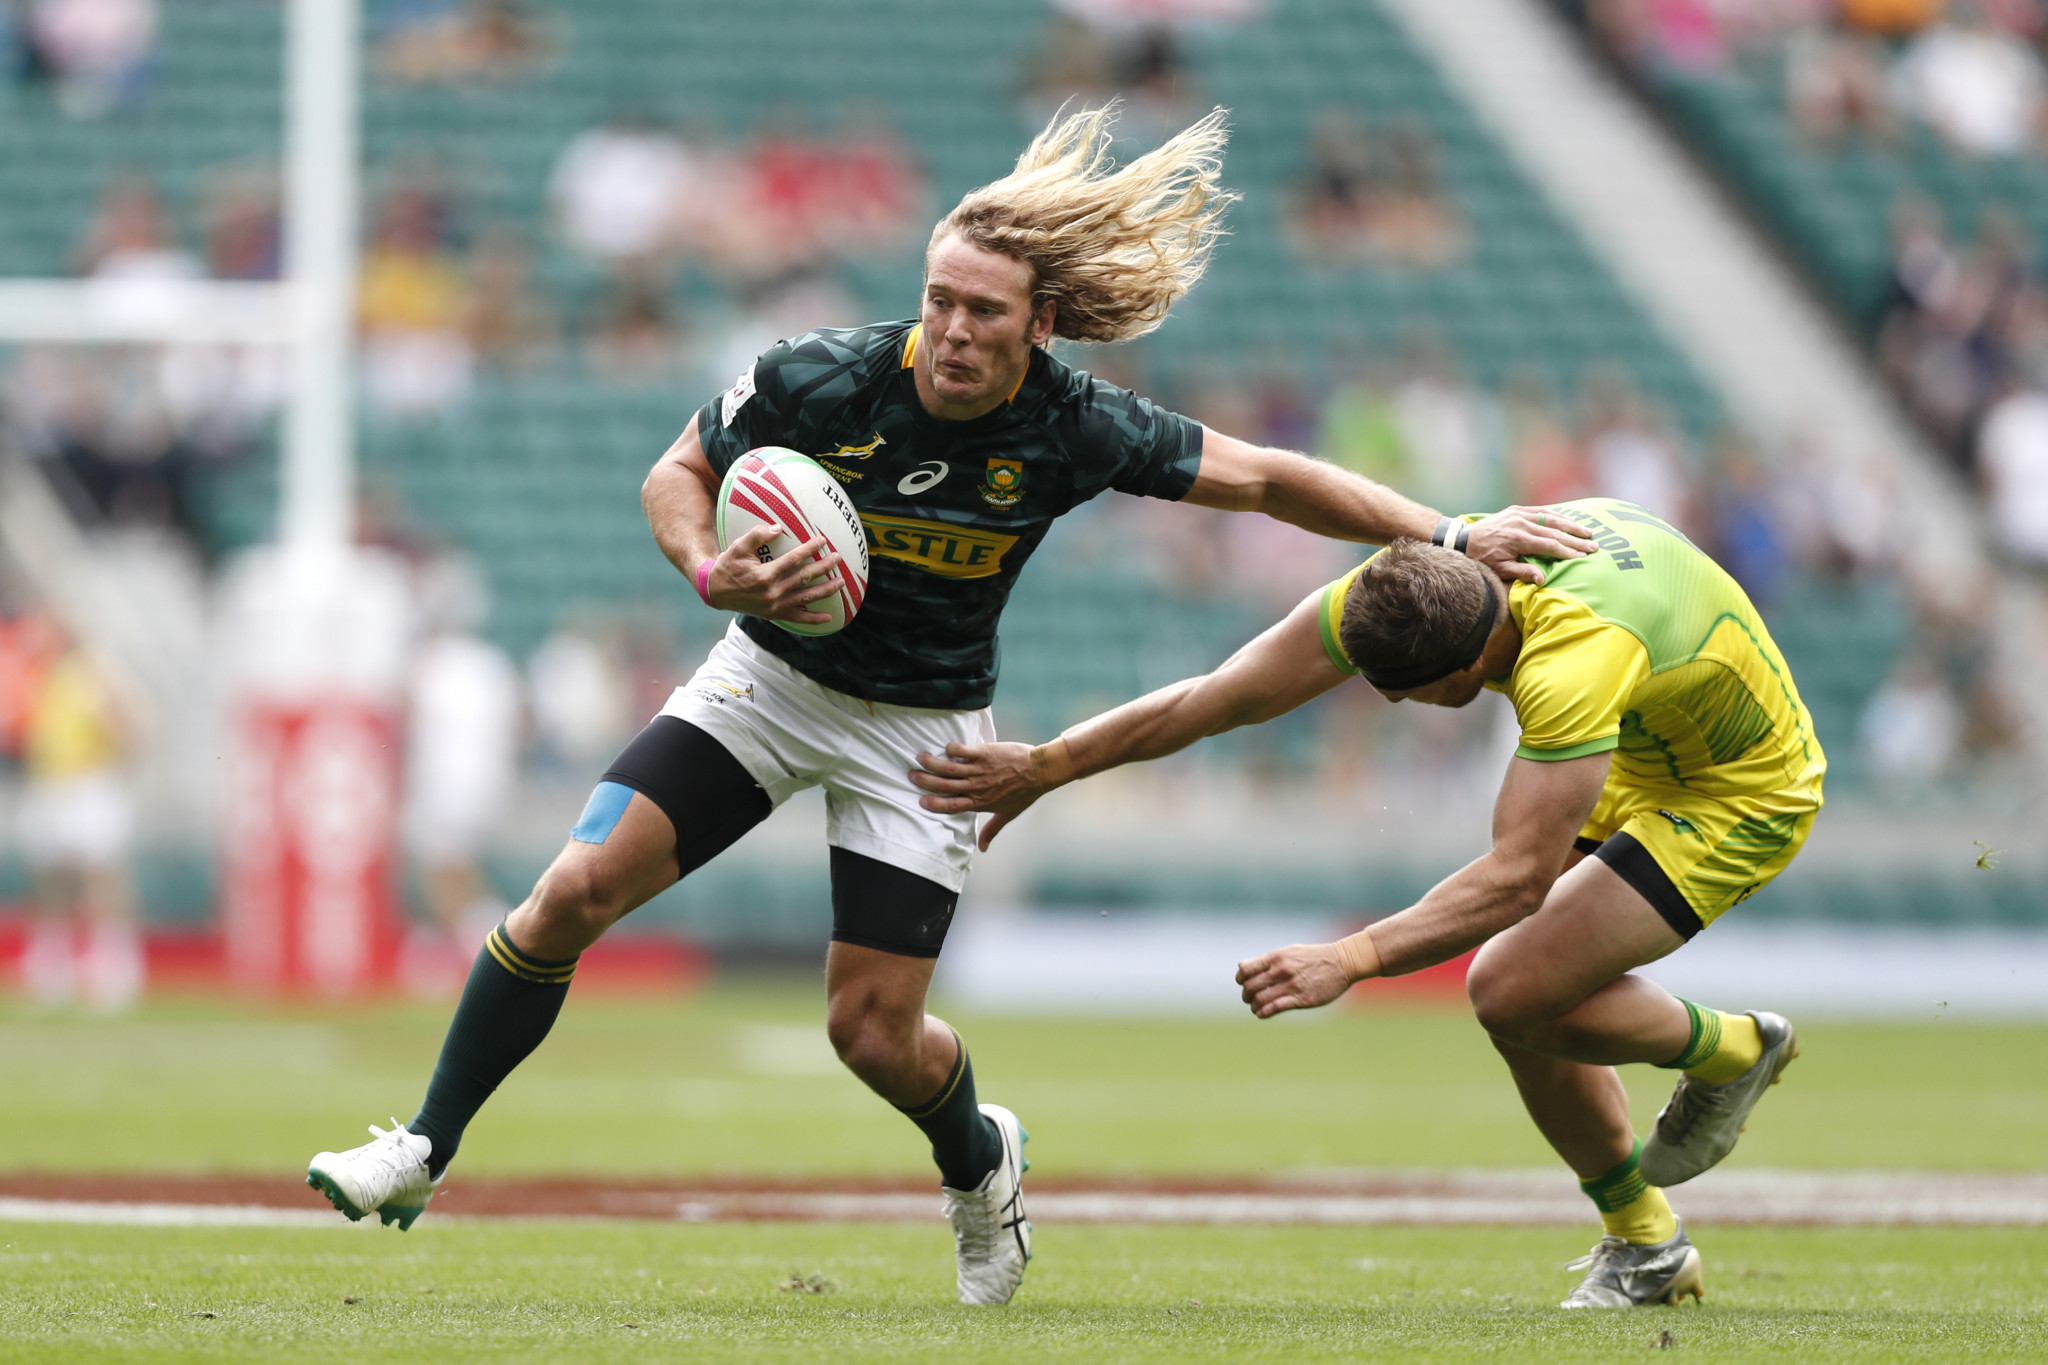 South Africa will qualify for the Tokyo 2020 Olympic Games just for taking to the pitch at Stade Jean Bouin in Paris ©Getty Images